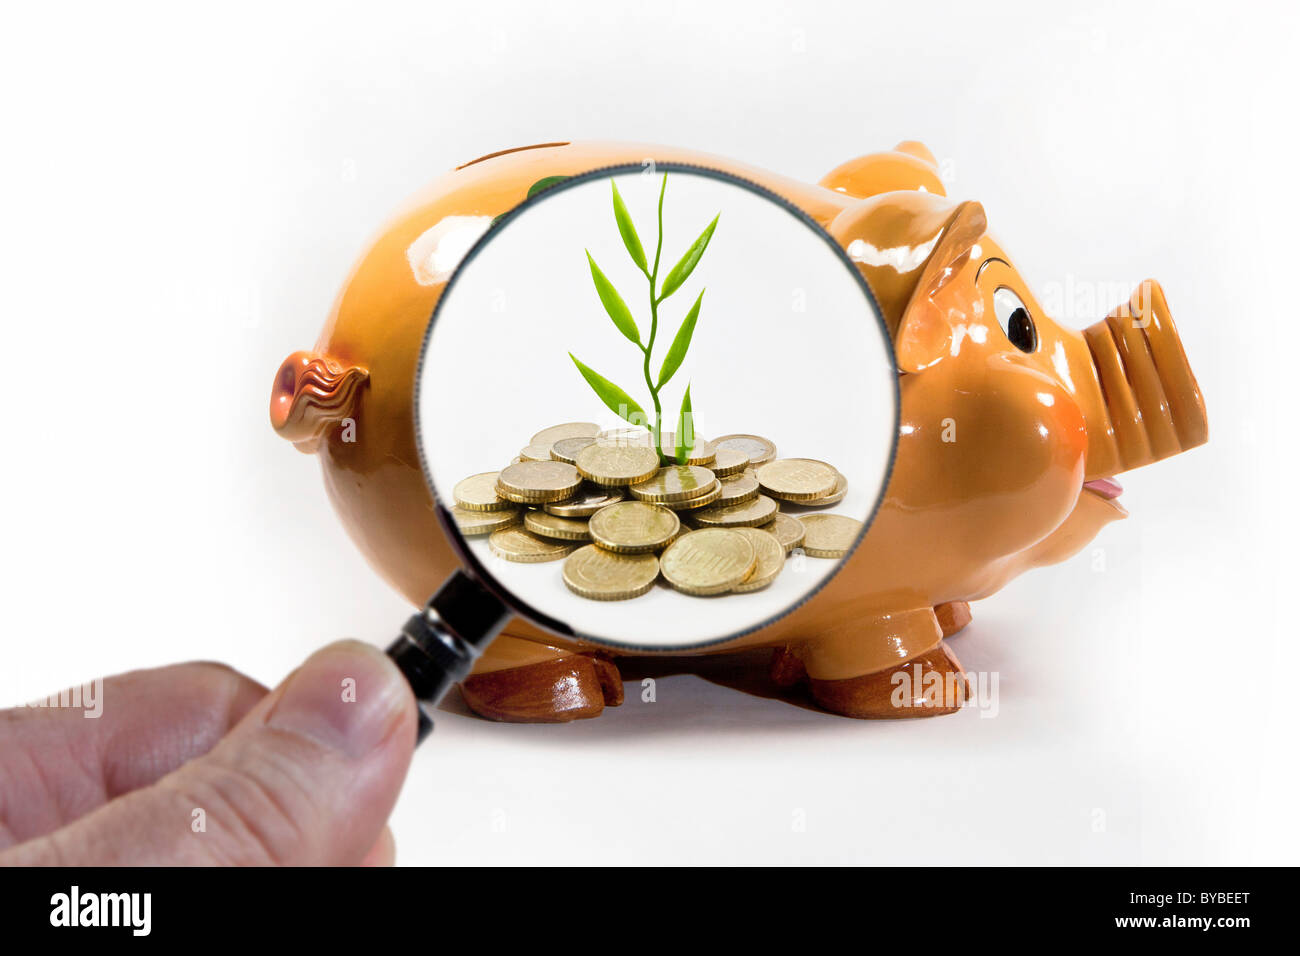 Symbolic image for slowly growing savings - Stock Image